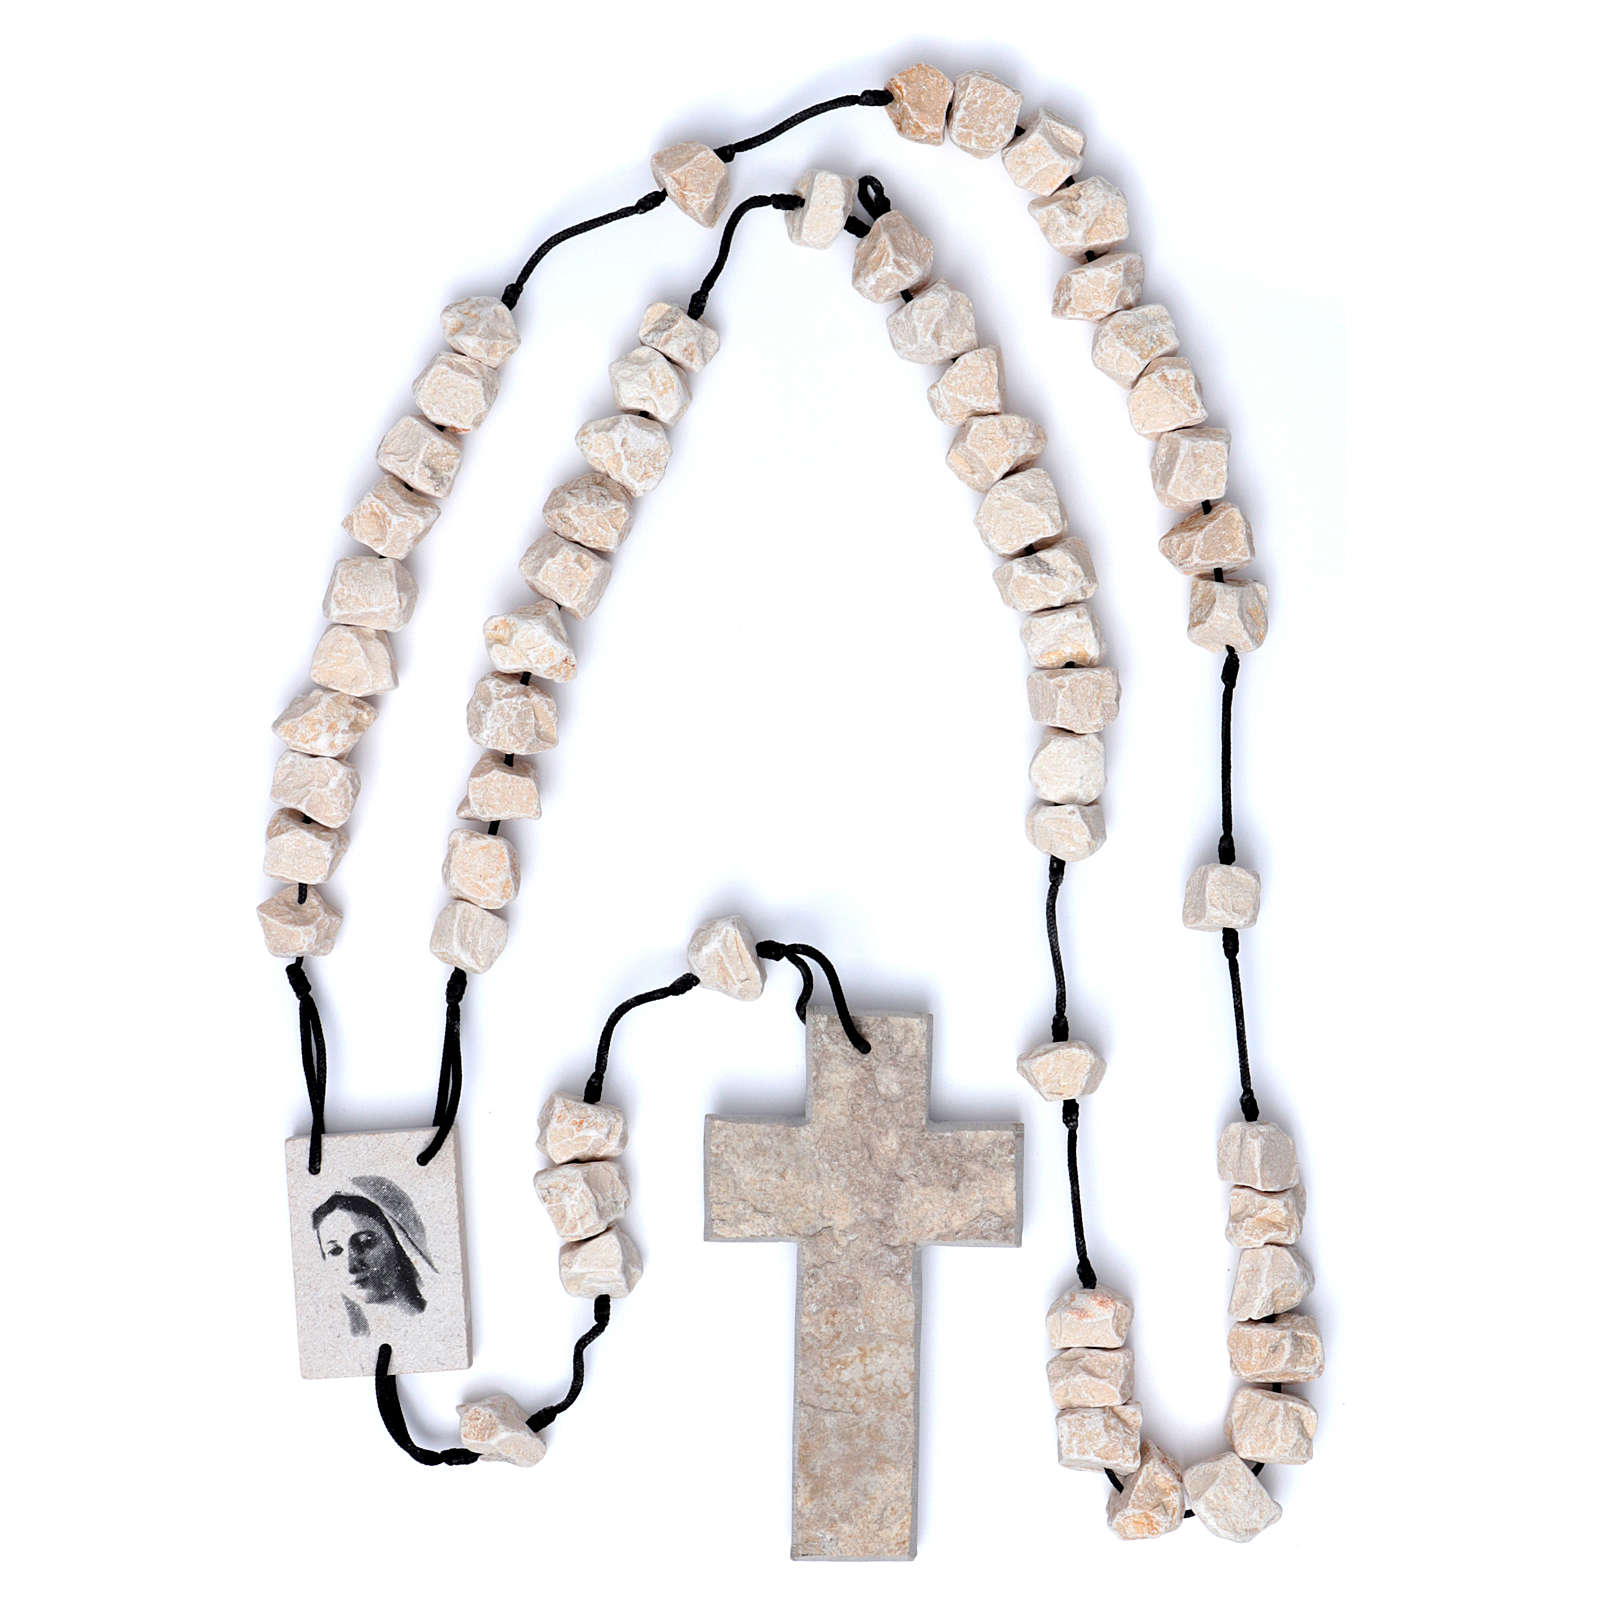 Medjugorje headboard rosary in stone and rope 4